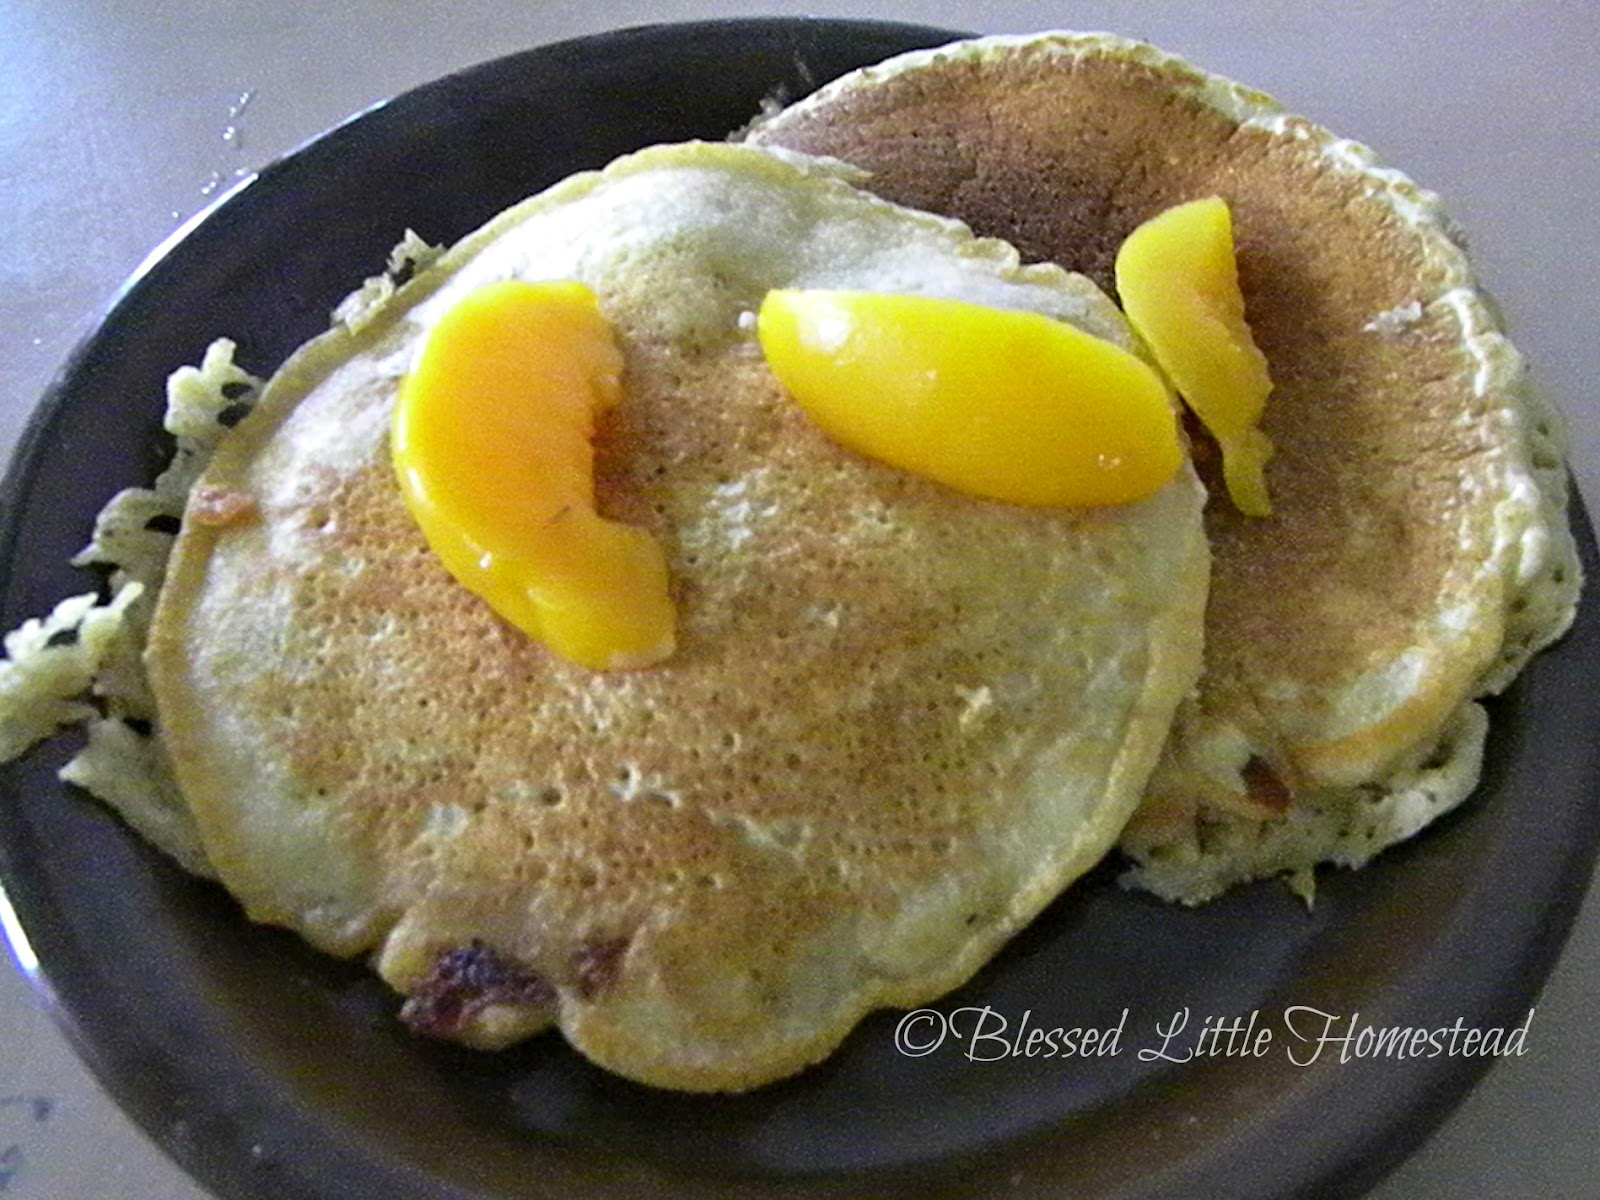 ... Little Homestead: September Skillet Meals ~ Whole Wheat Peach Pancakes